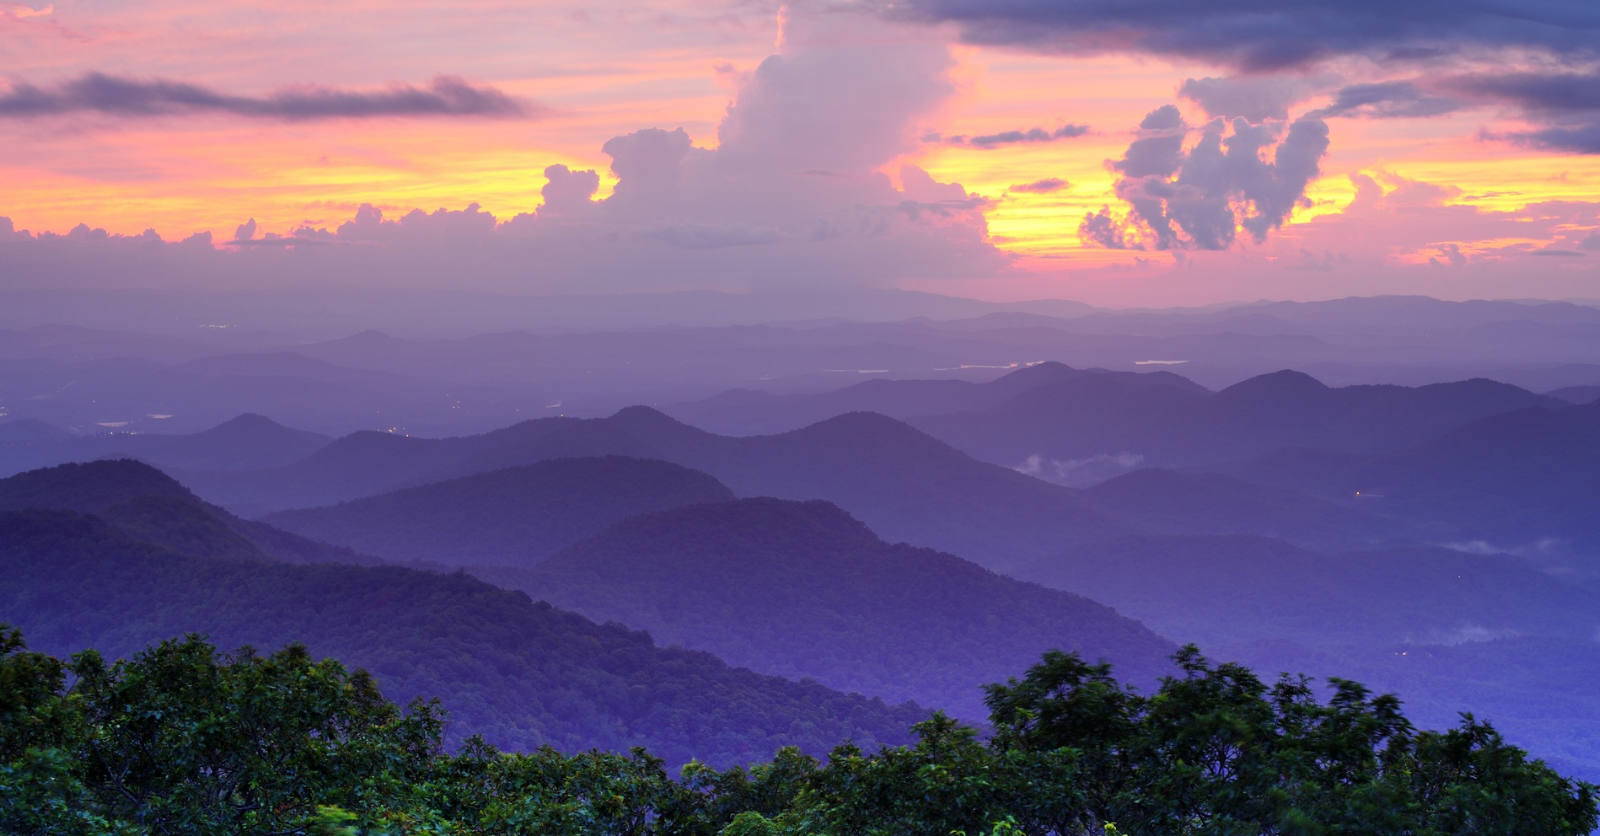 Lessons from Appalachia